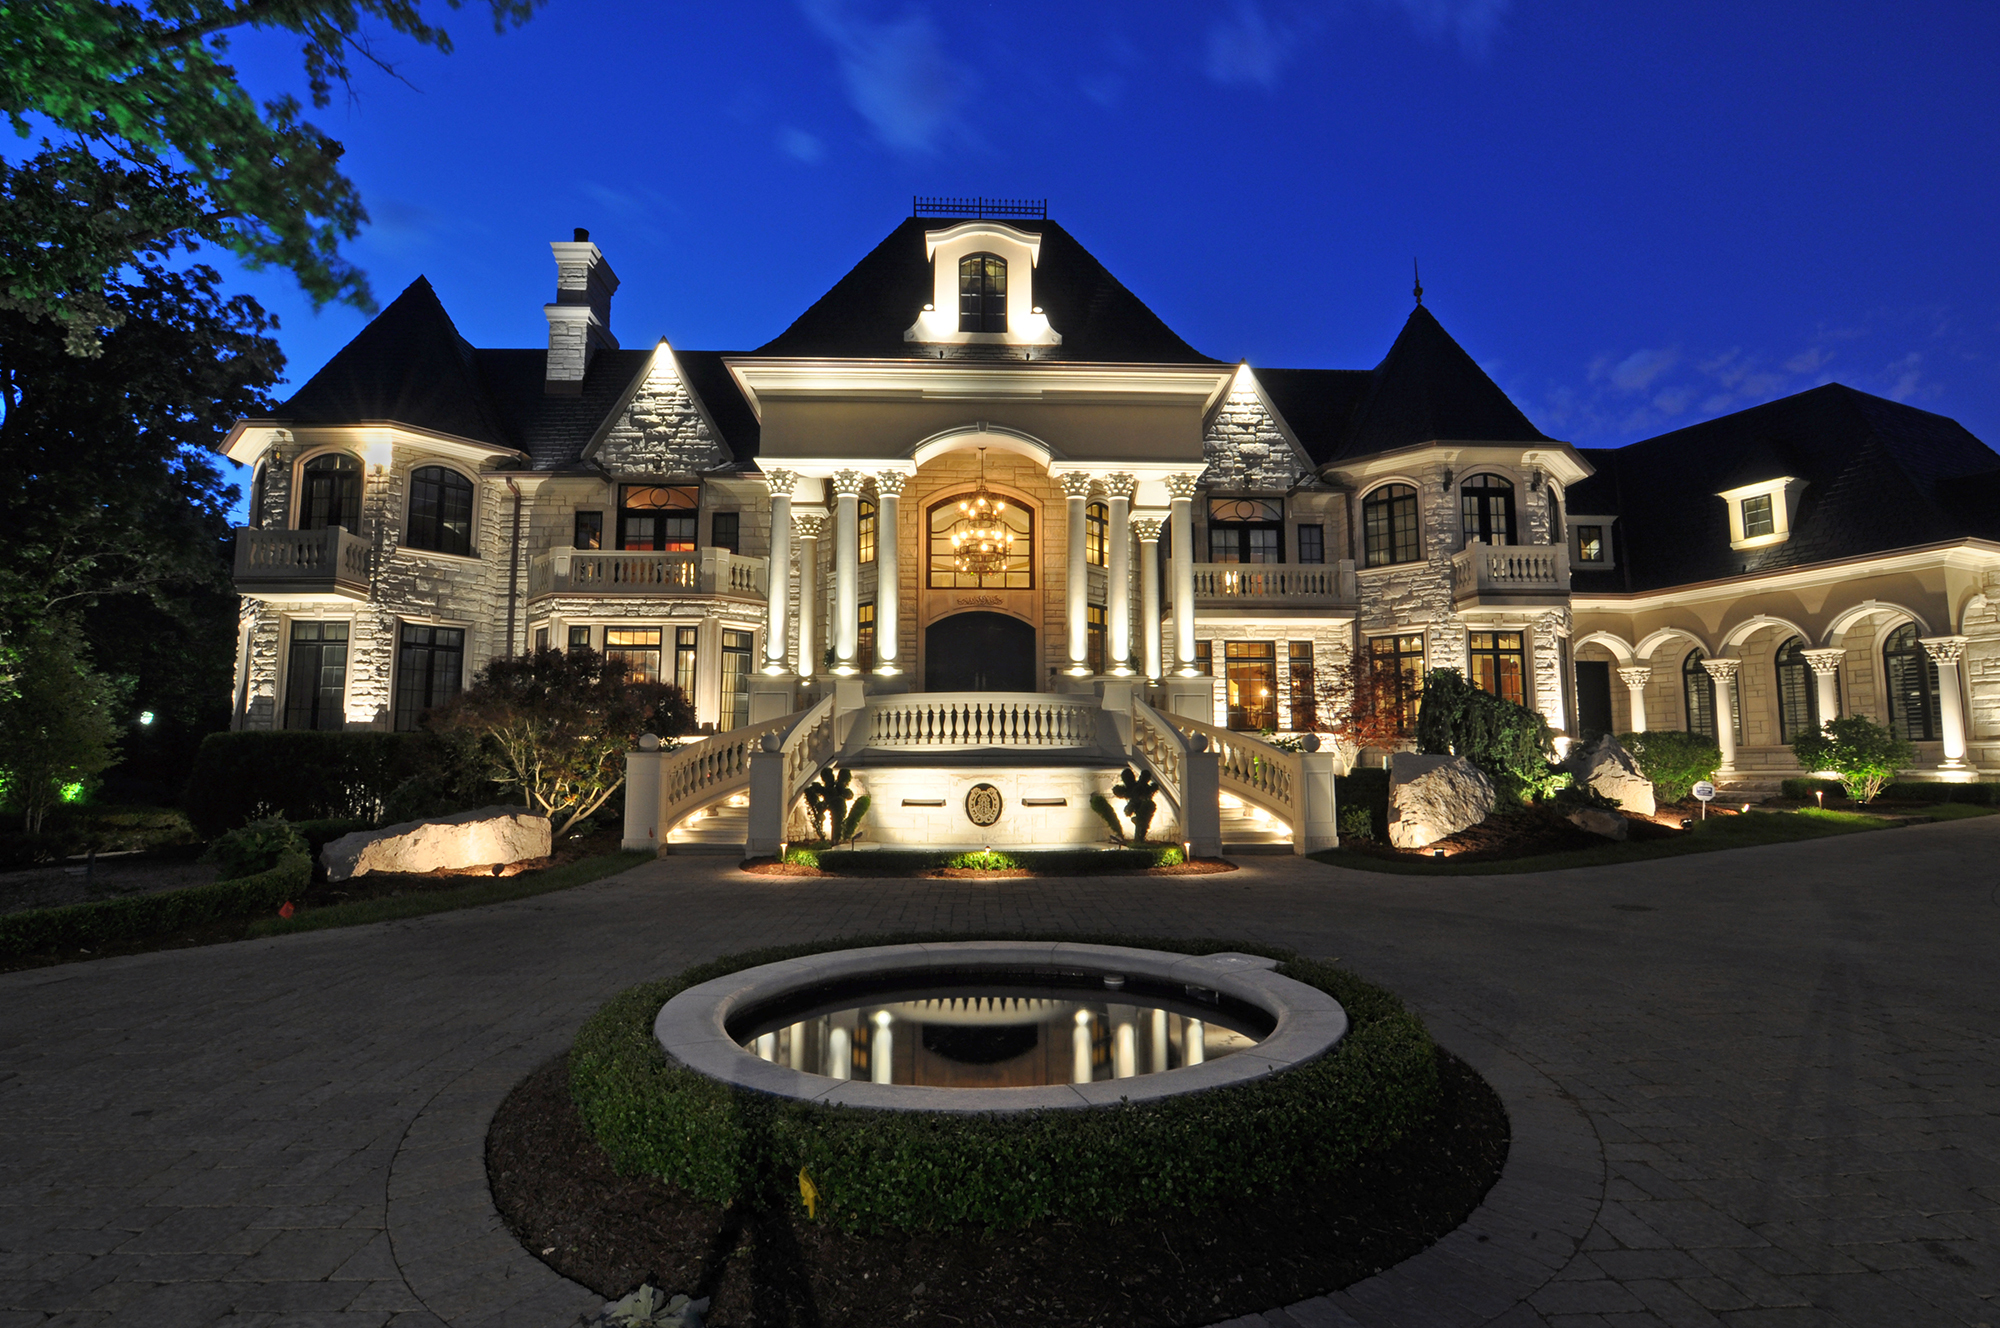 Chicago landscape lighting company outdoor accents inc recognized chicago landscape lighting company outdoor accents inc recognized nationally with two lighting design awards business wire aloadofball Image collections